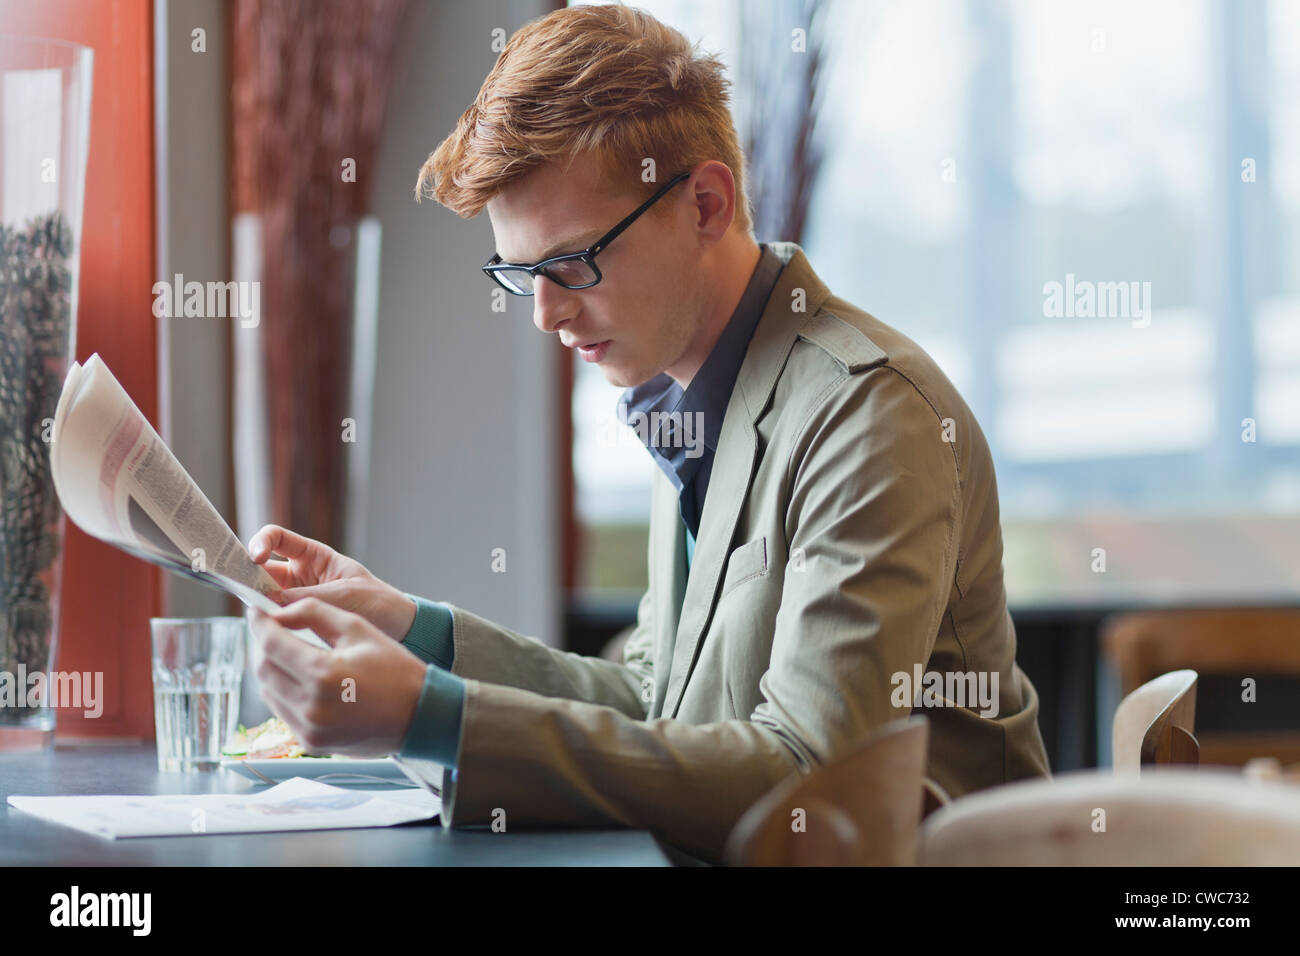 Man sitting in a restaurant and reading a newspaper - Stock Image